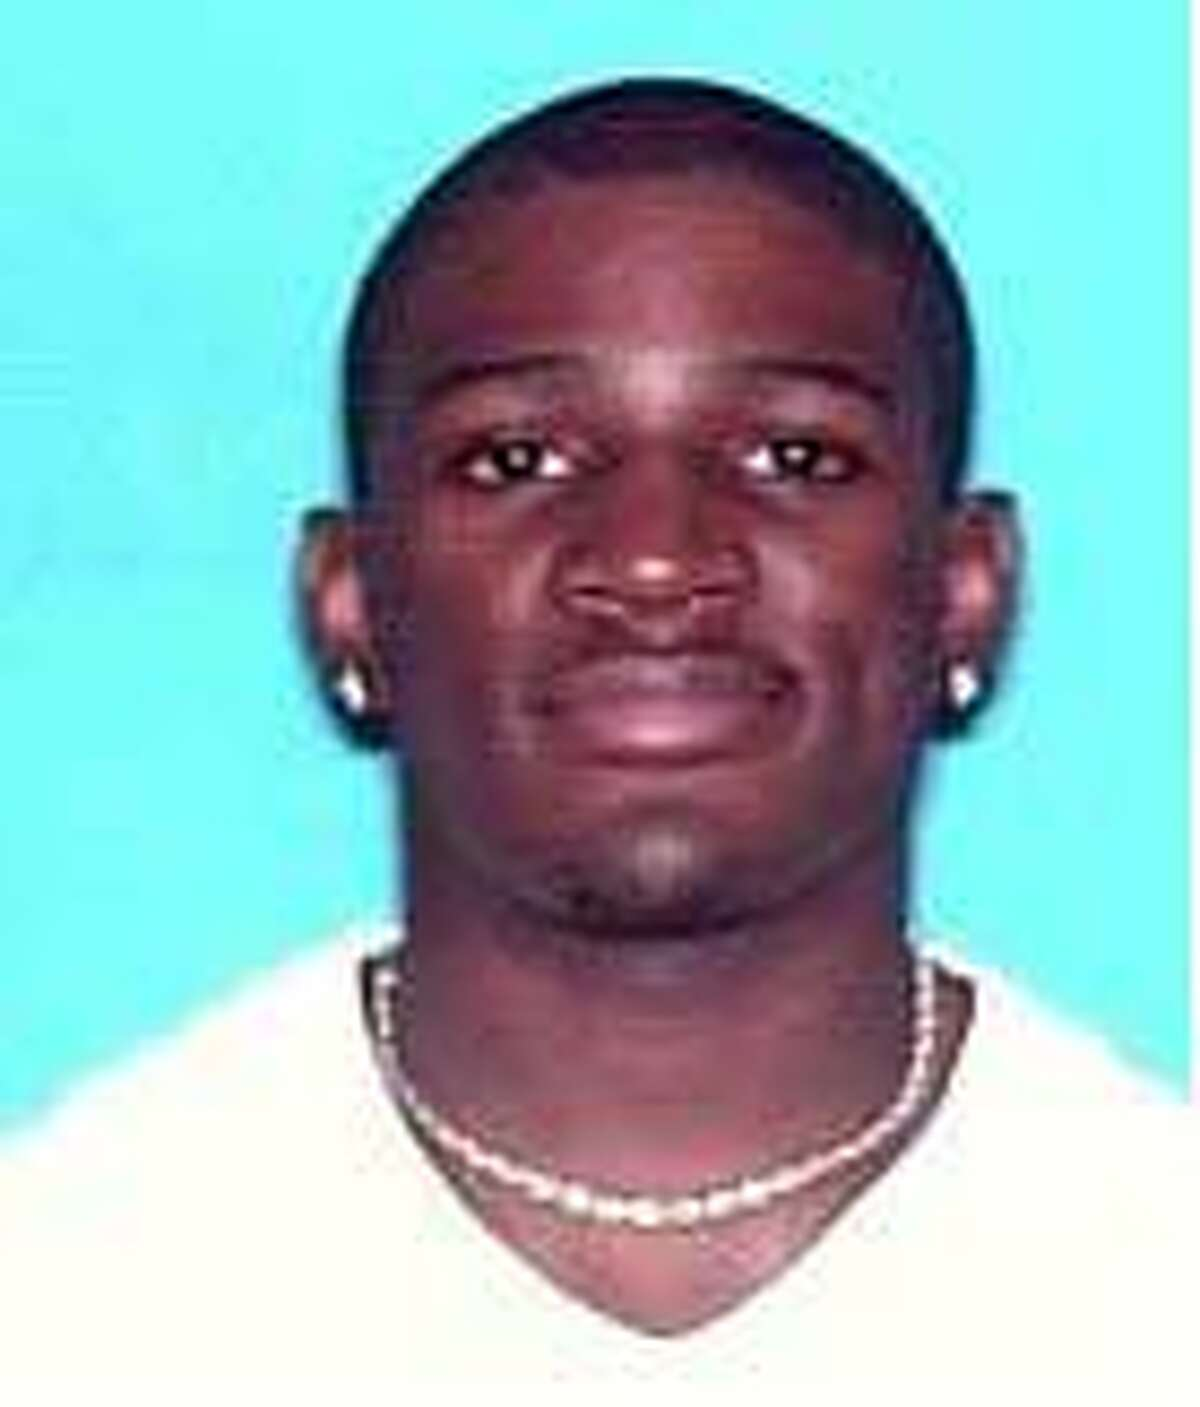 Leandre Vonzell Hill is wanted for the murder of Randall Perkins, theaggravated assault of Paul Benavides. SAPD also issued a warrant forburglary of a habitation related to a previous incident.